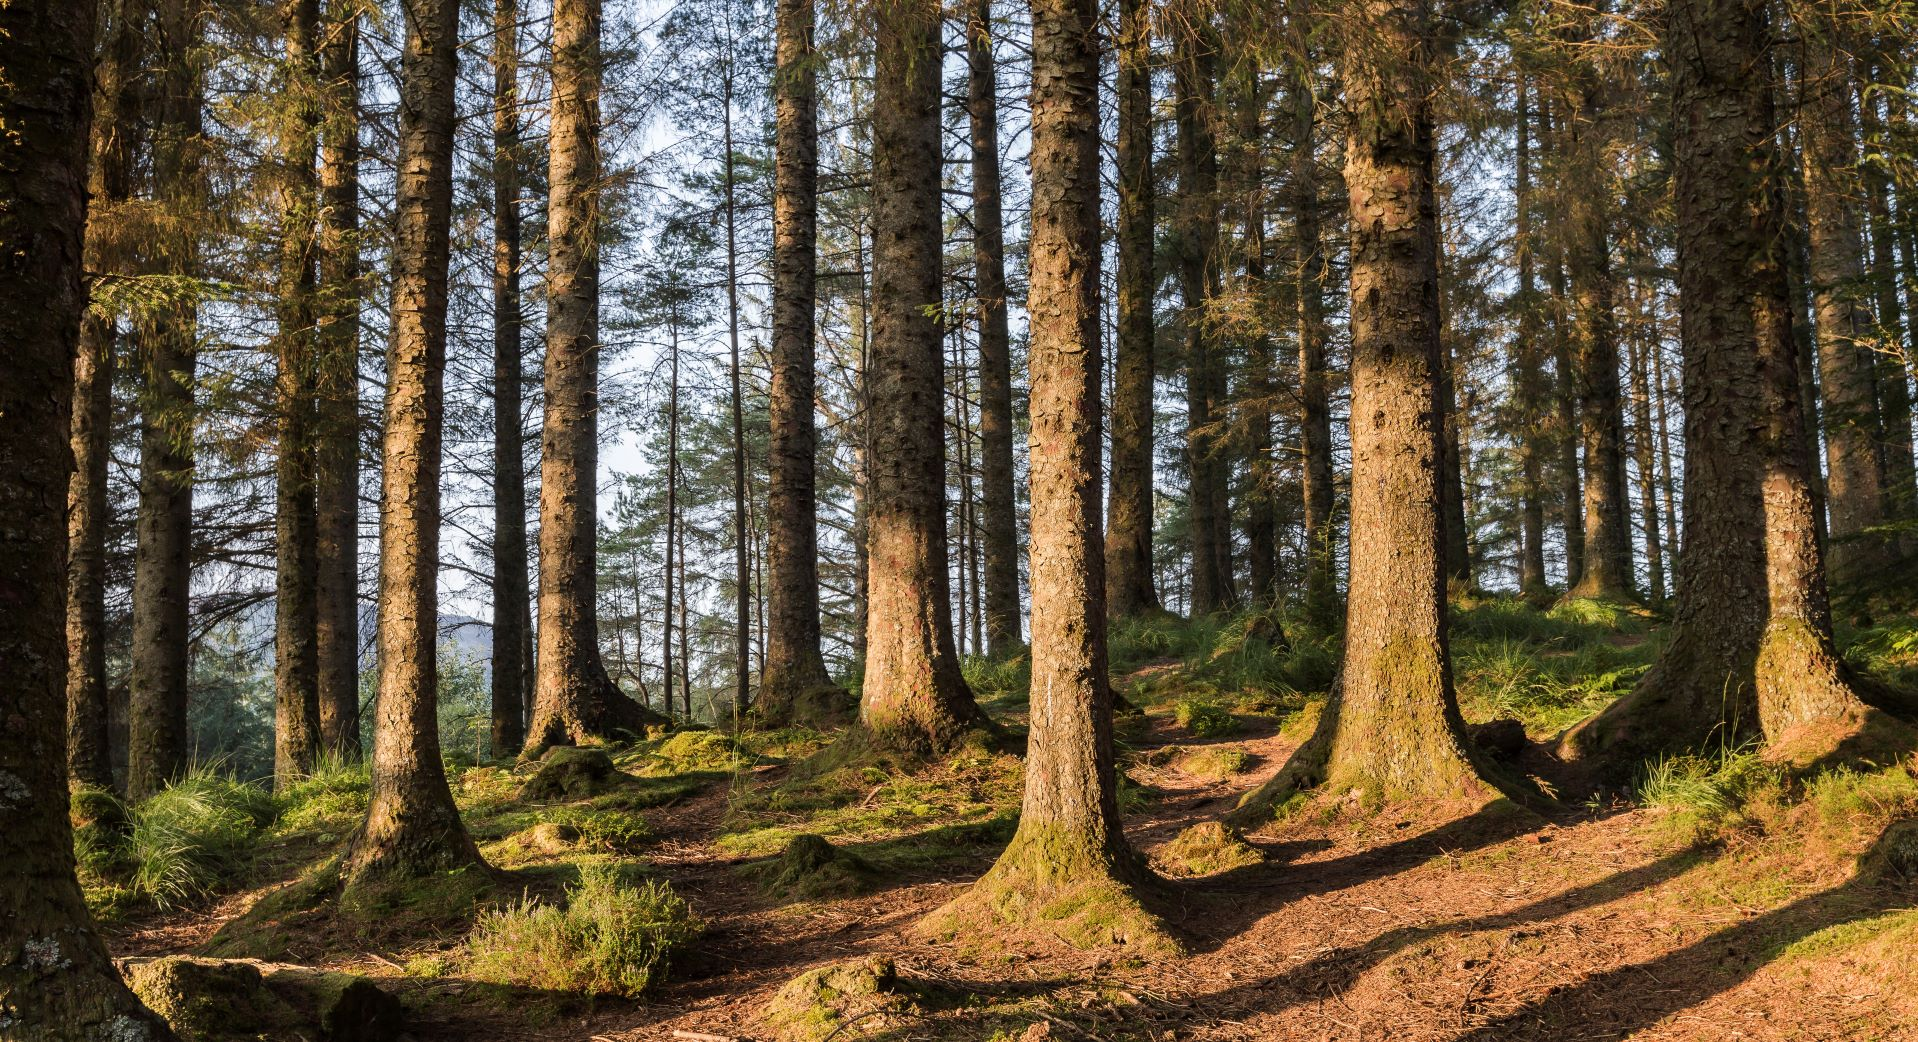 A group of coniferous trees in Ardcastle forest.